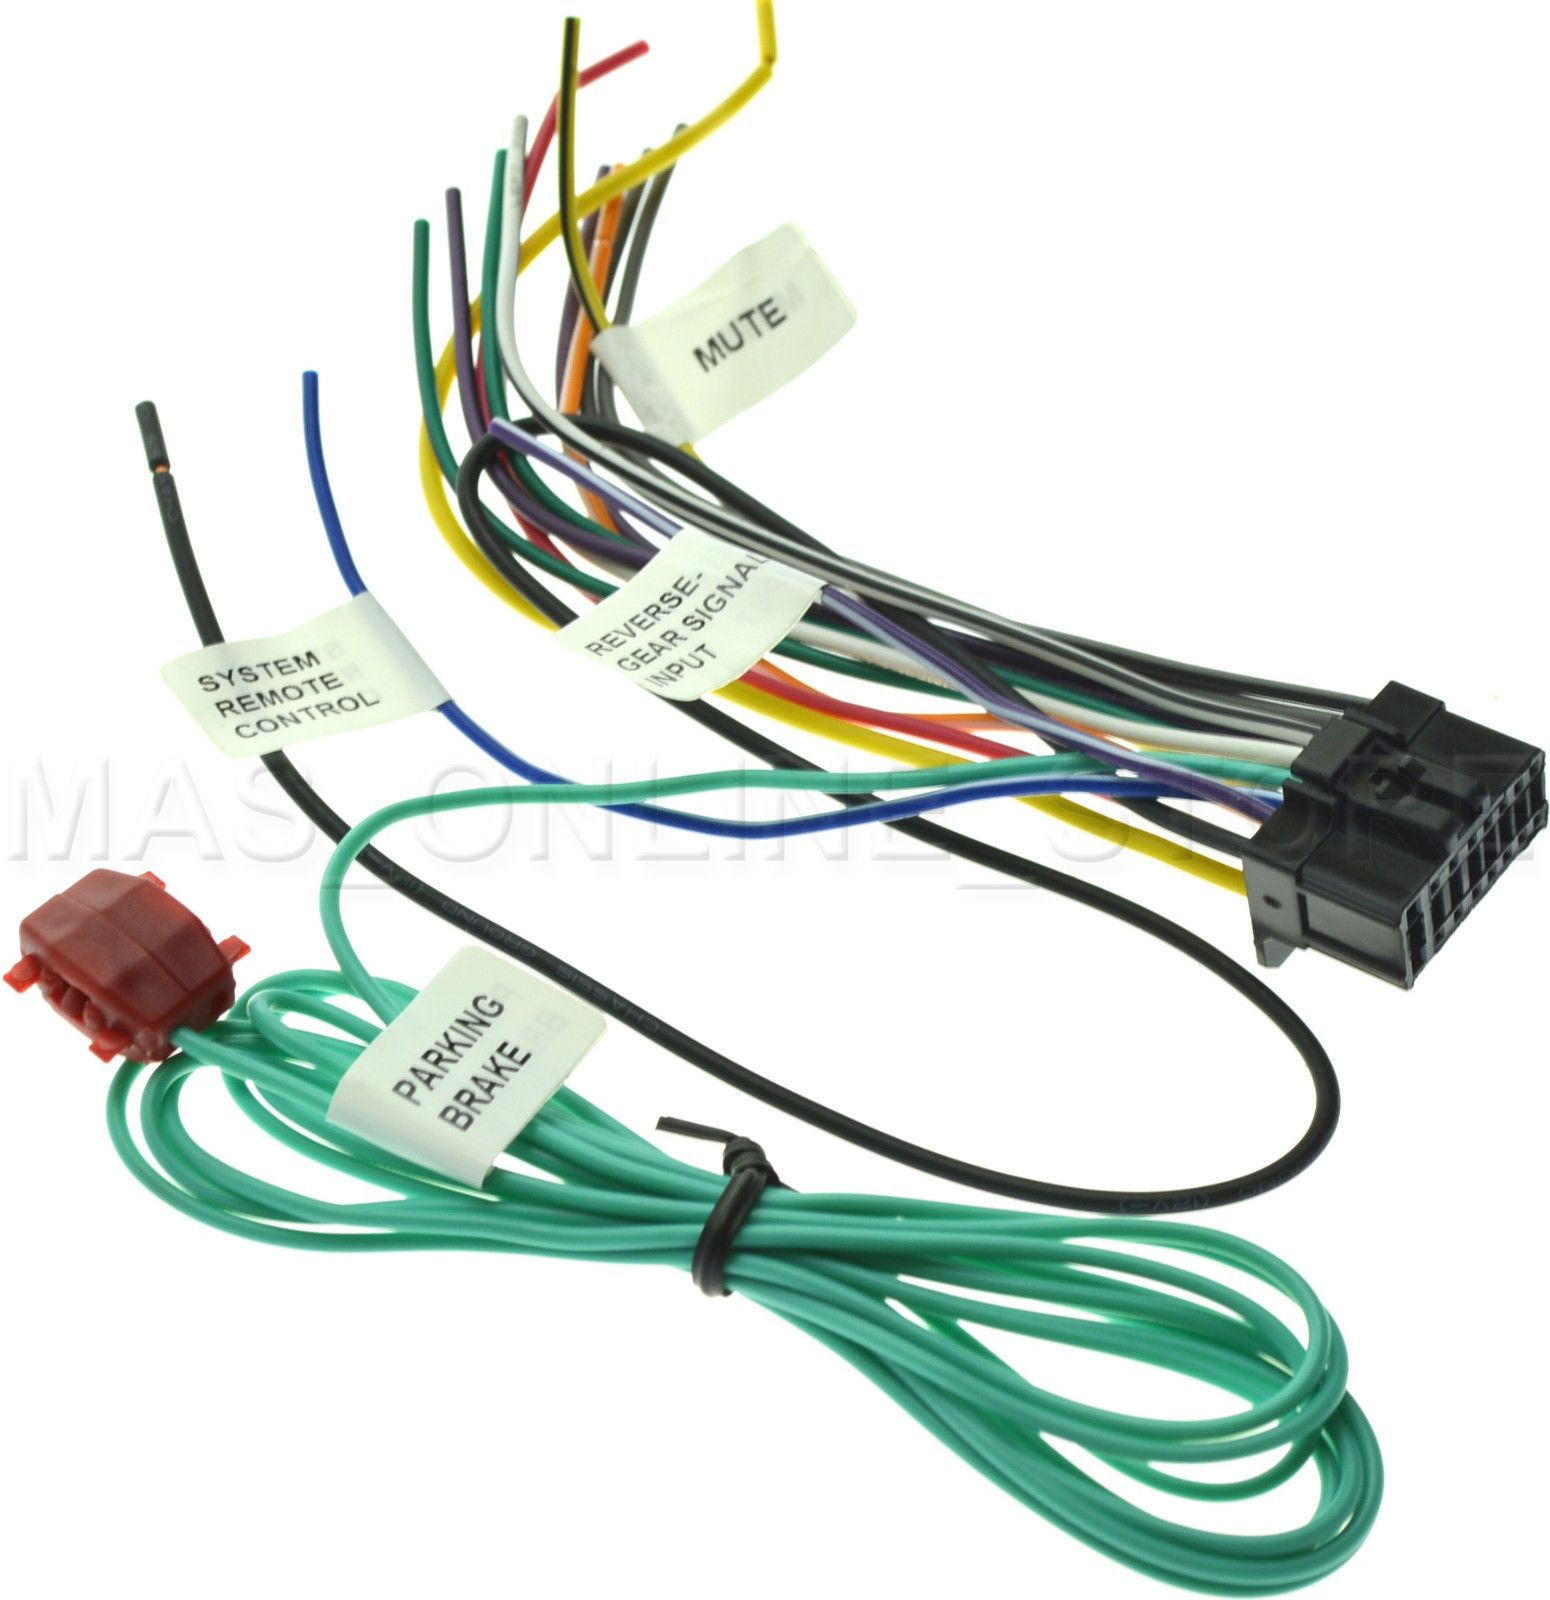 small resolution of  12 91 wire harness for pioneer avh p8400bh avhp8400bh pay today ships today ebay